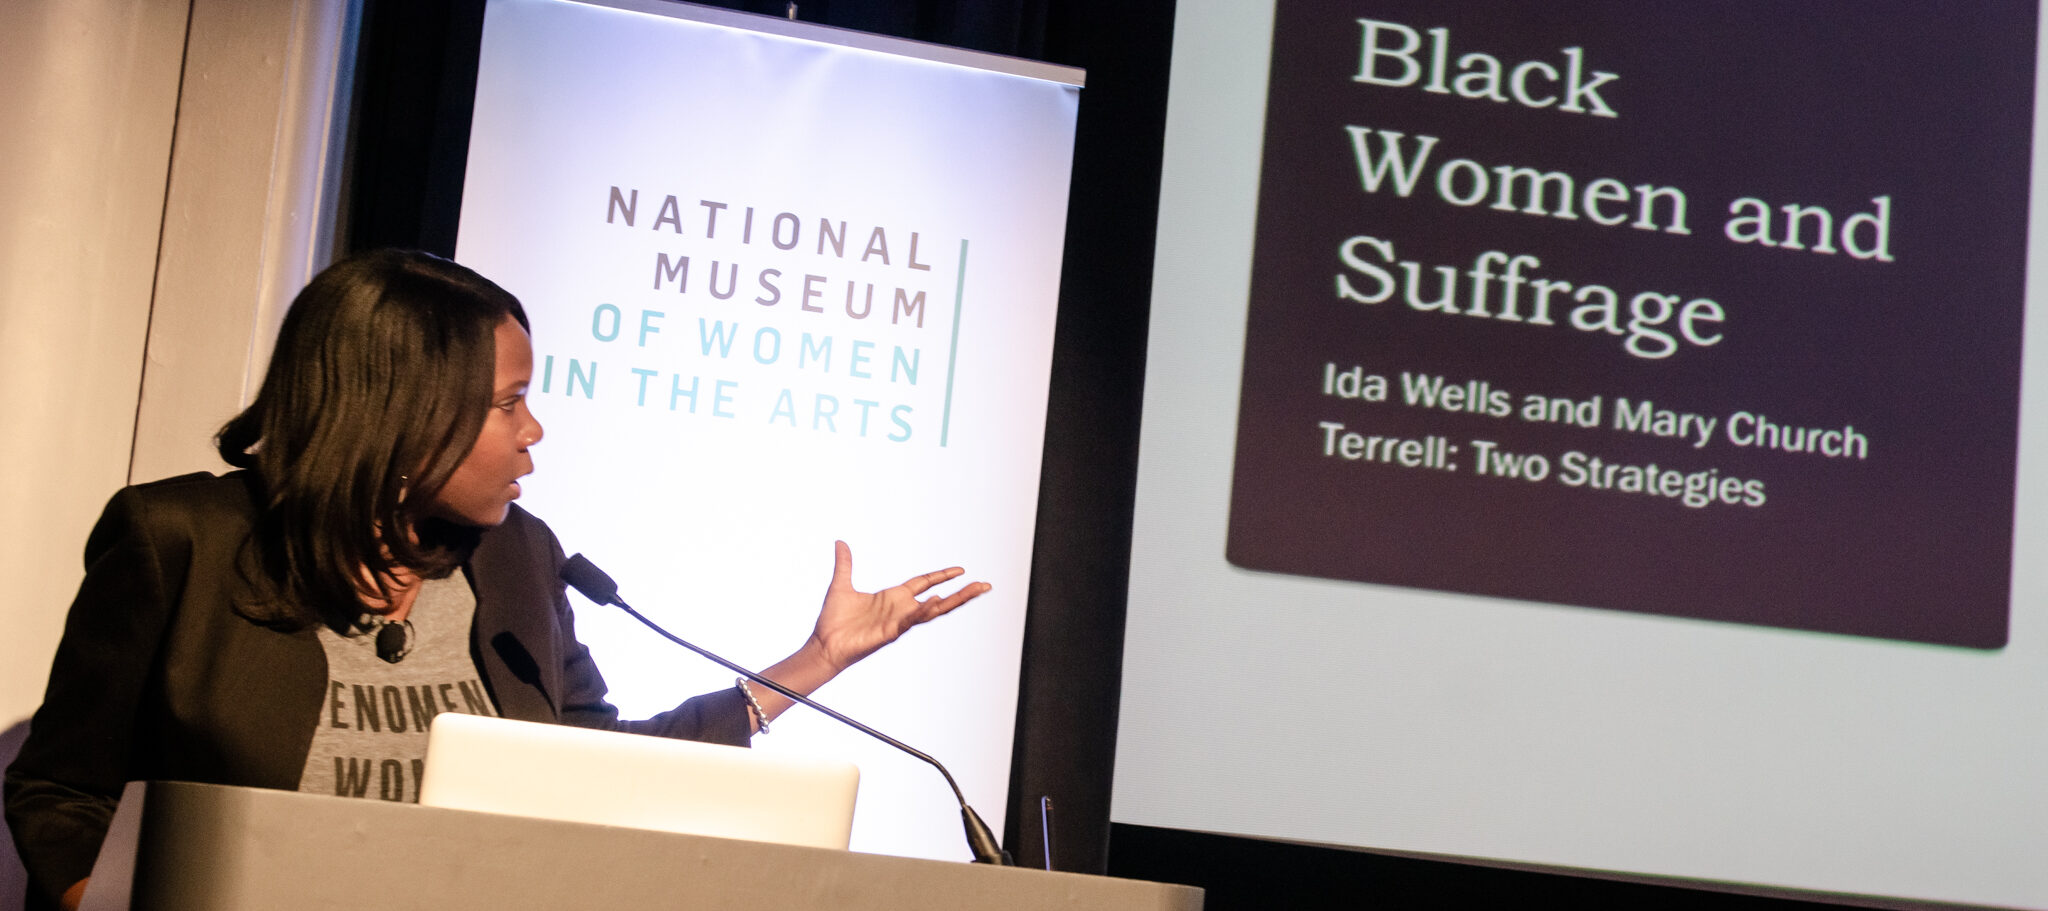 "Adjoa B. Asamoah—a dark-skinned adult woman—stands at a podium with the NMWA logo on the front. She speaks into a microphone while gesturing at a projected presentation slide behind her that reads ""Black Women and Suffrage. Ida Wells and Mary Cherch Terrell: Two Strategies."""